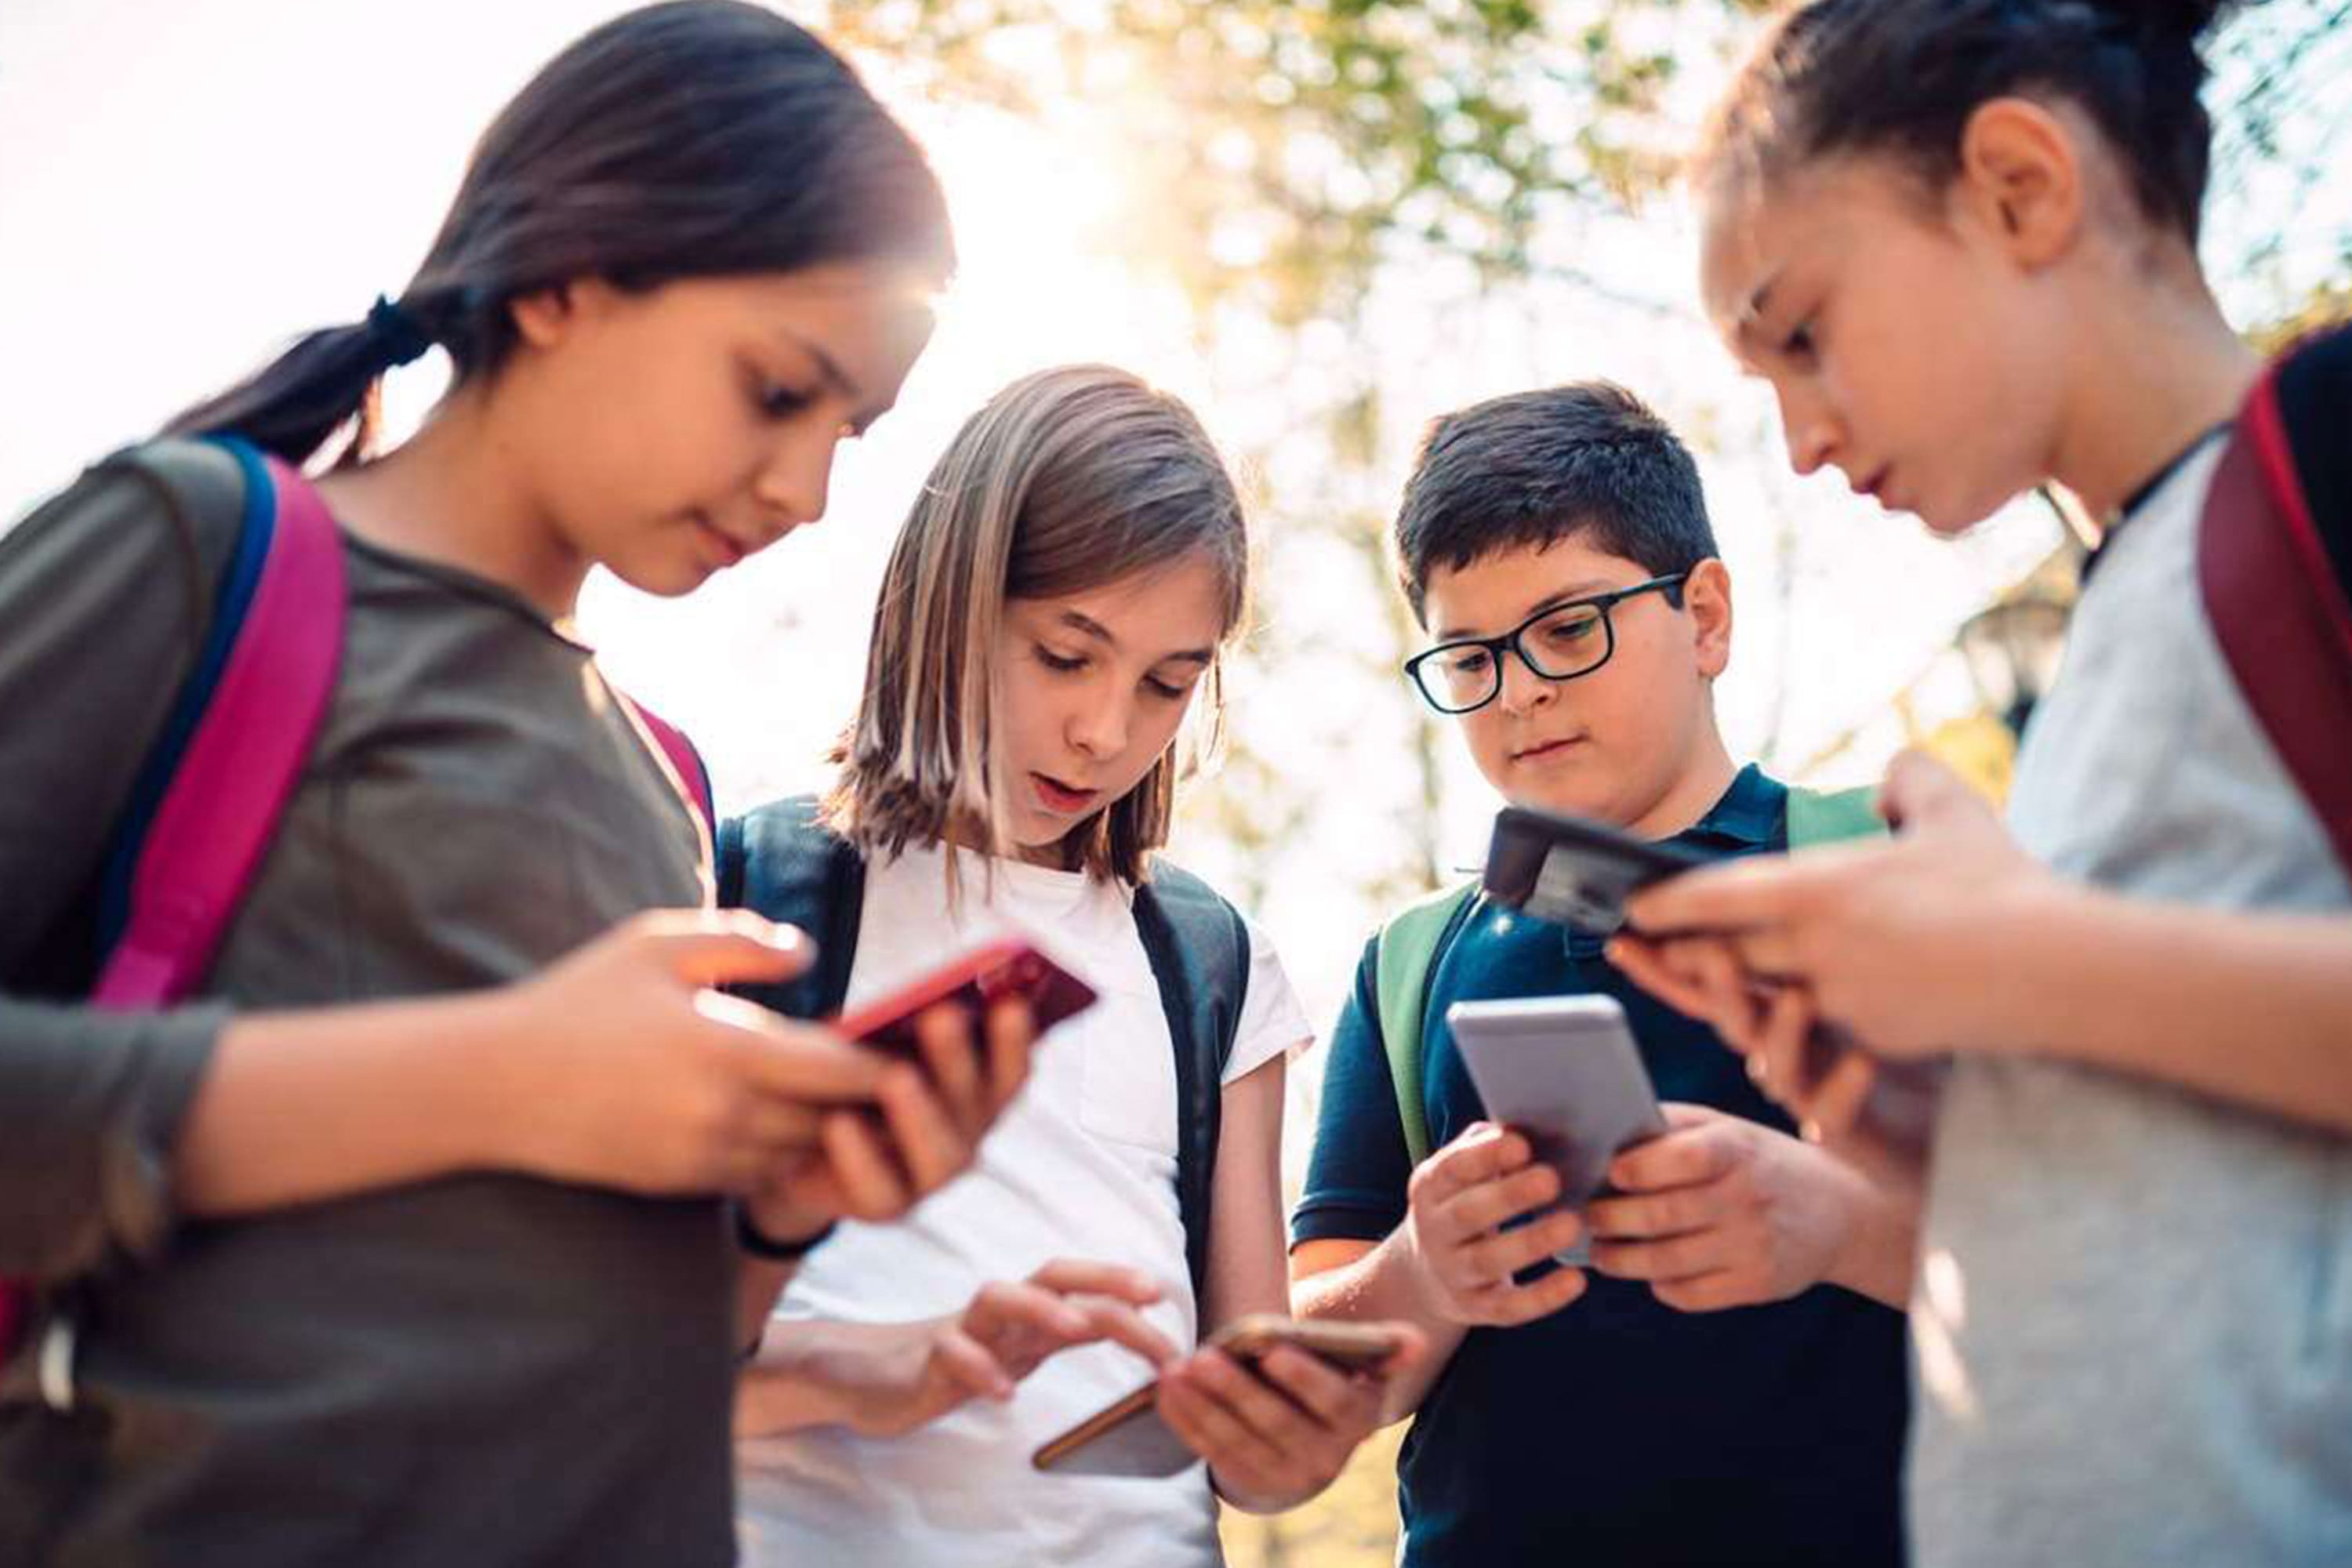 apple-donates-2-500-devices-to-the-boys-and-girls-club-across-the-u-s-20201119-1